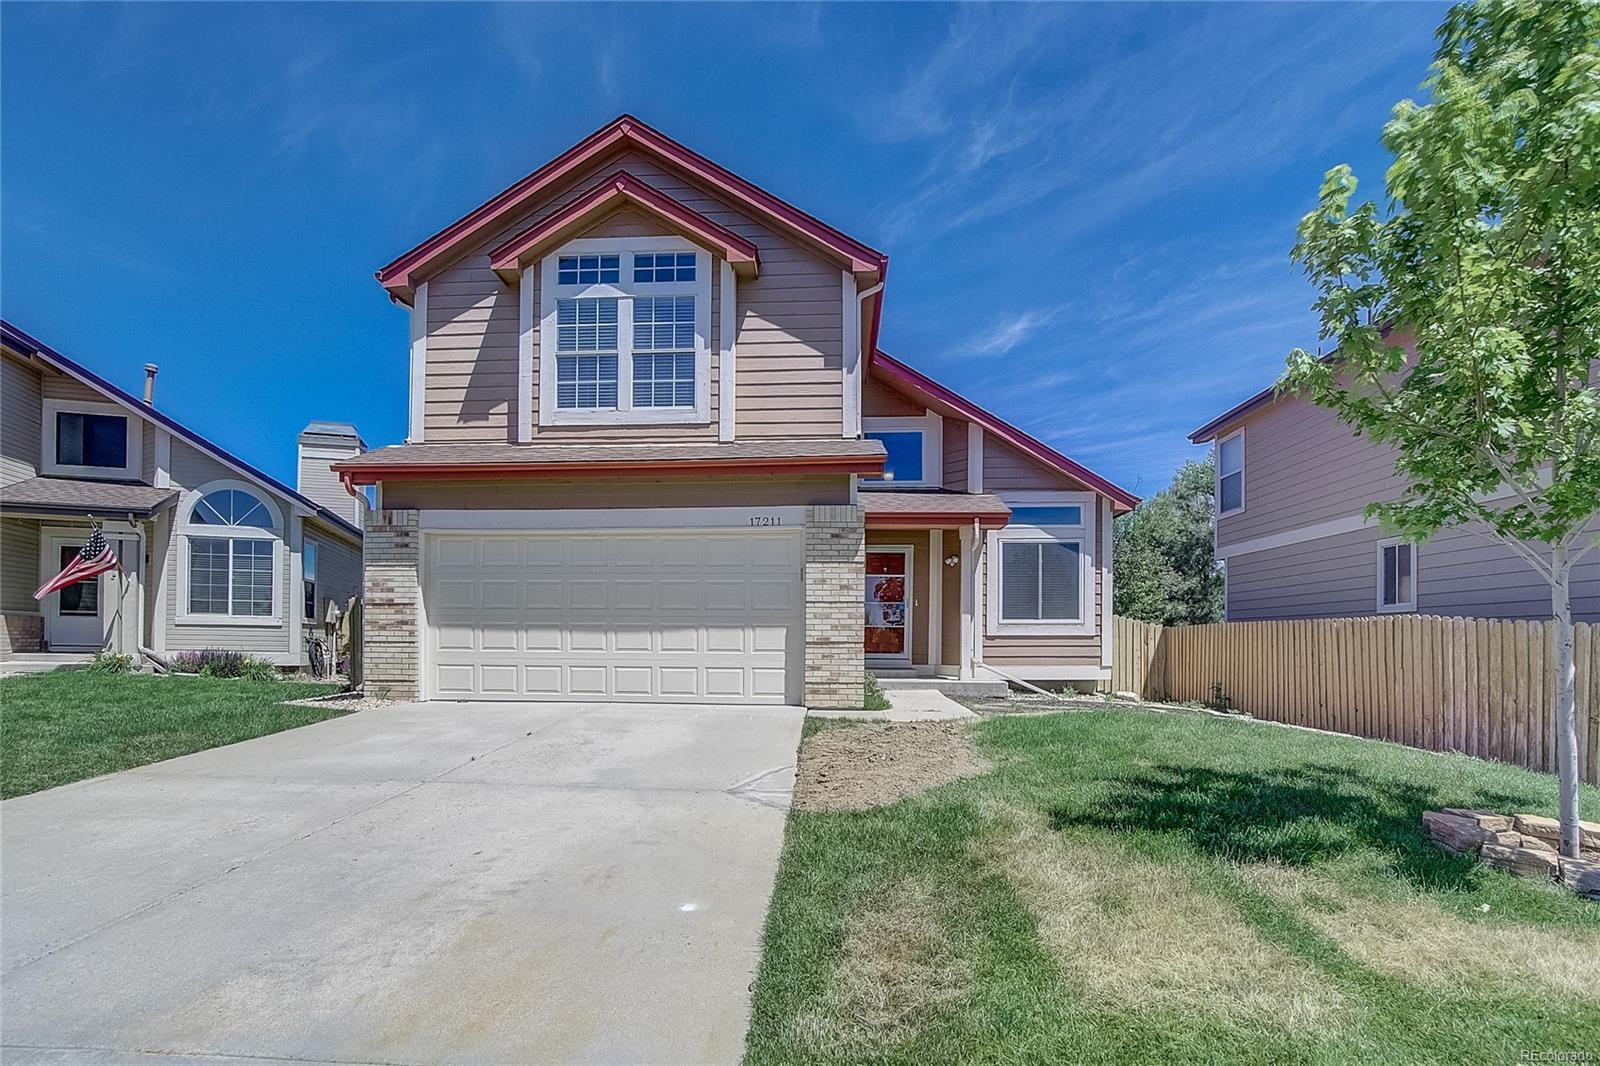 MLS# 8188727 - 1 - 17211 Springfield Court, Parker, CO 80134